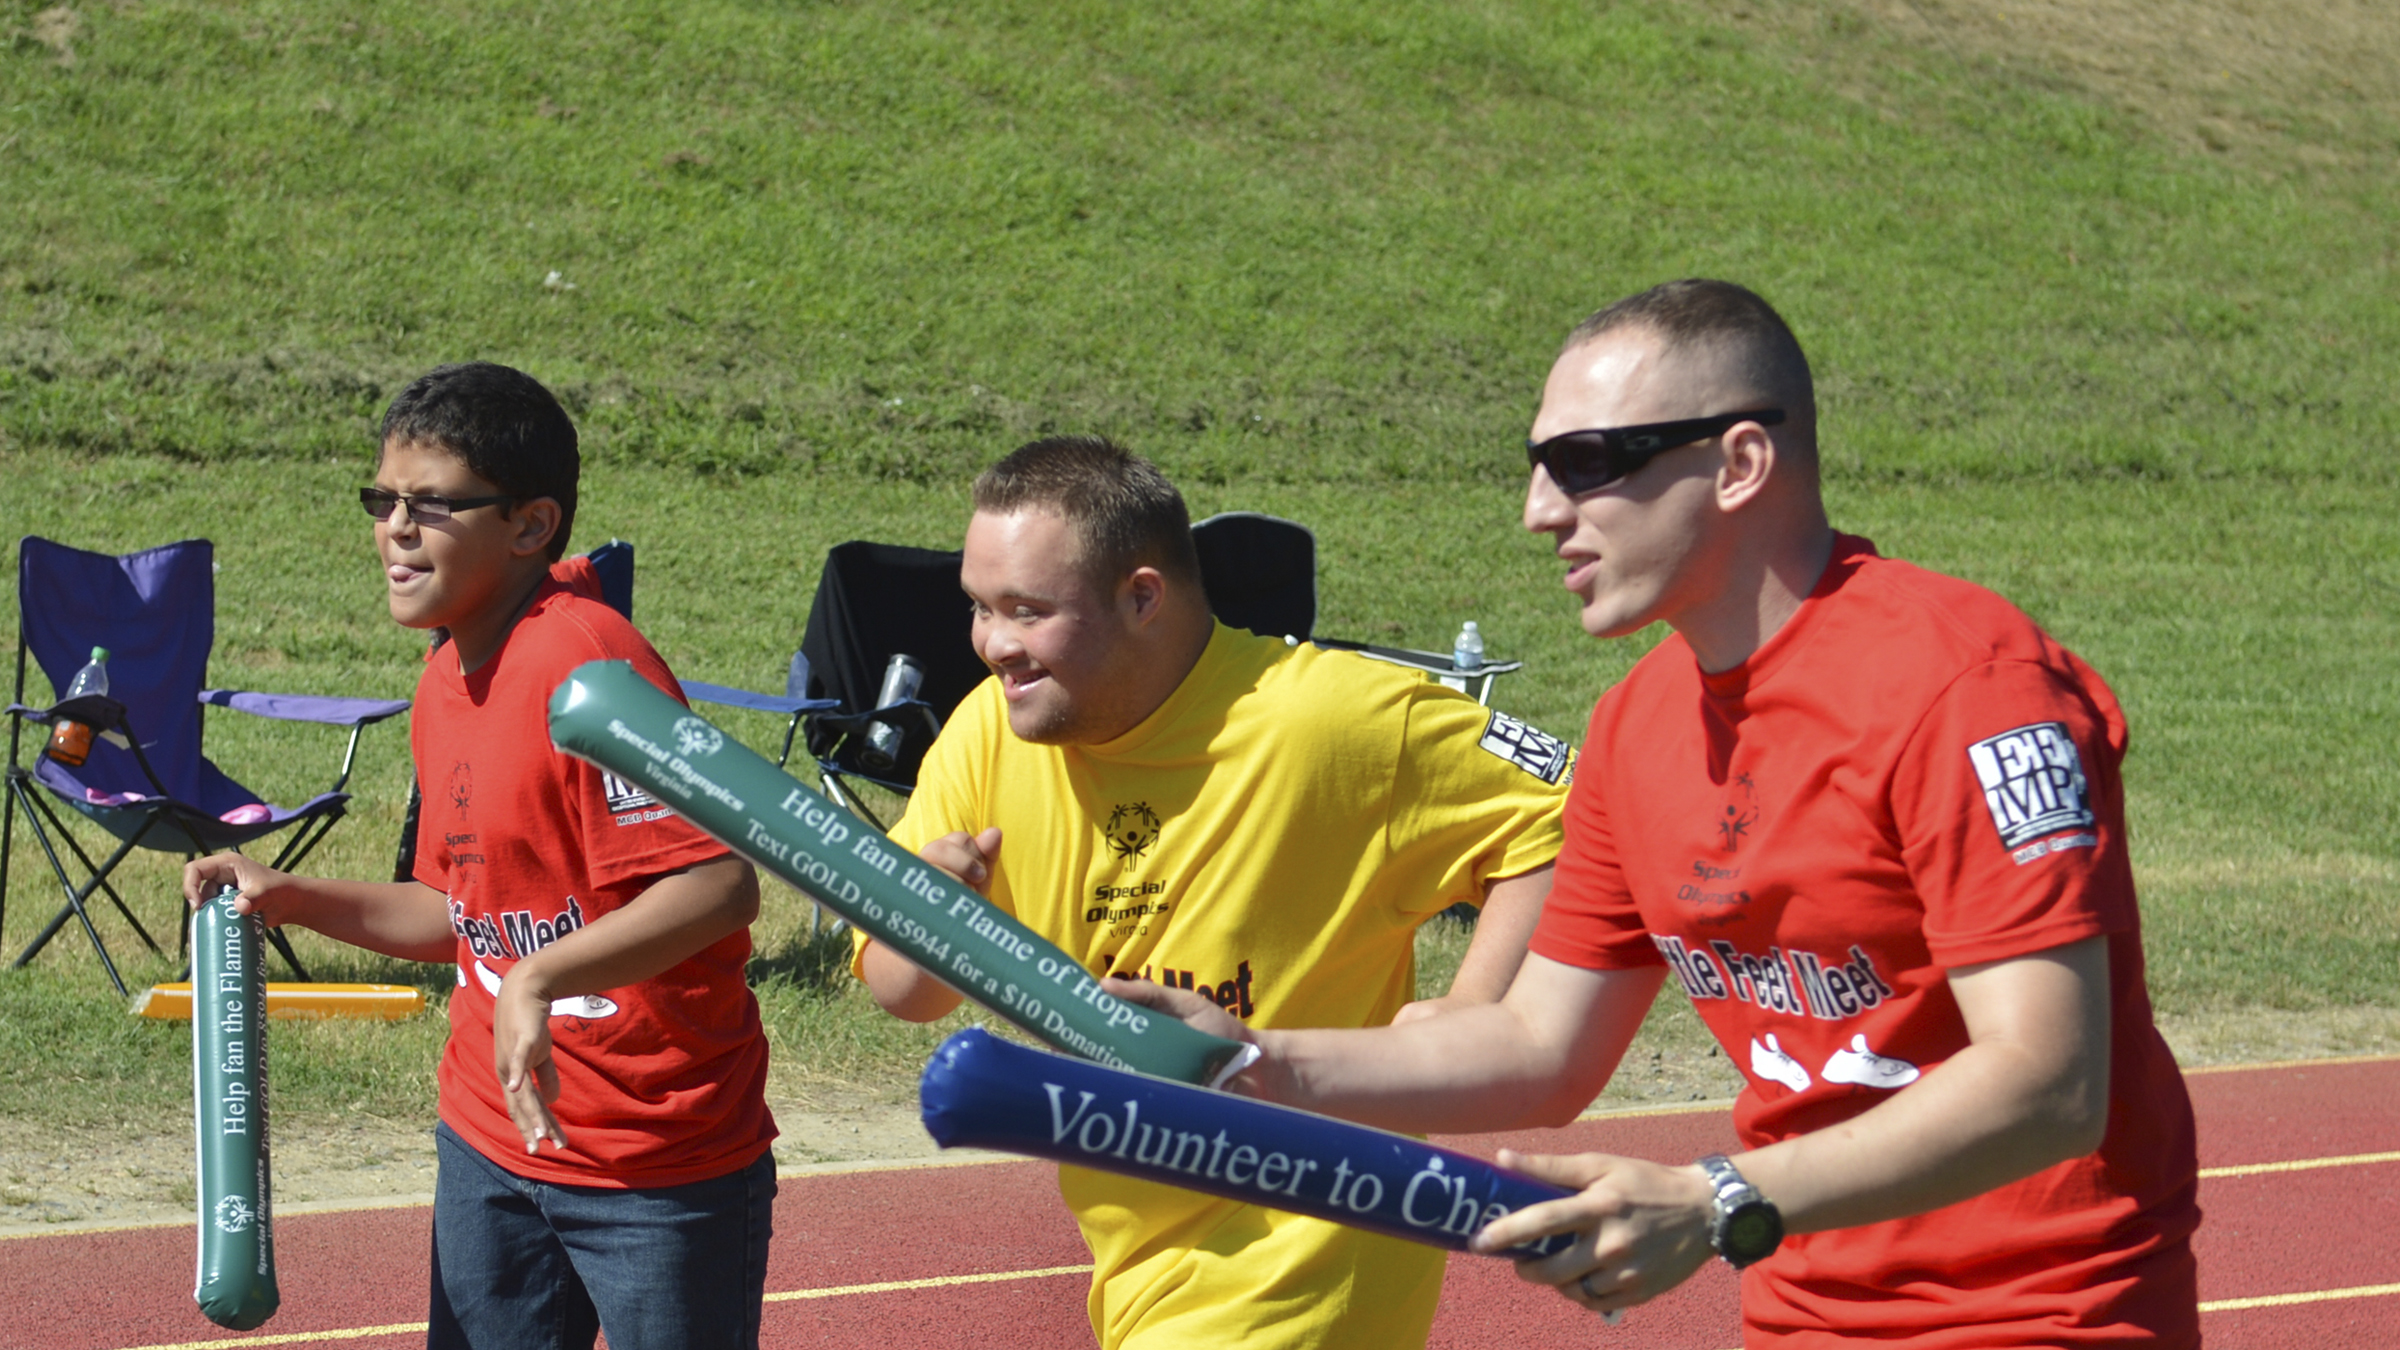 Special Olympics participant runs during a track and field event.